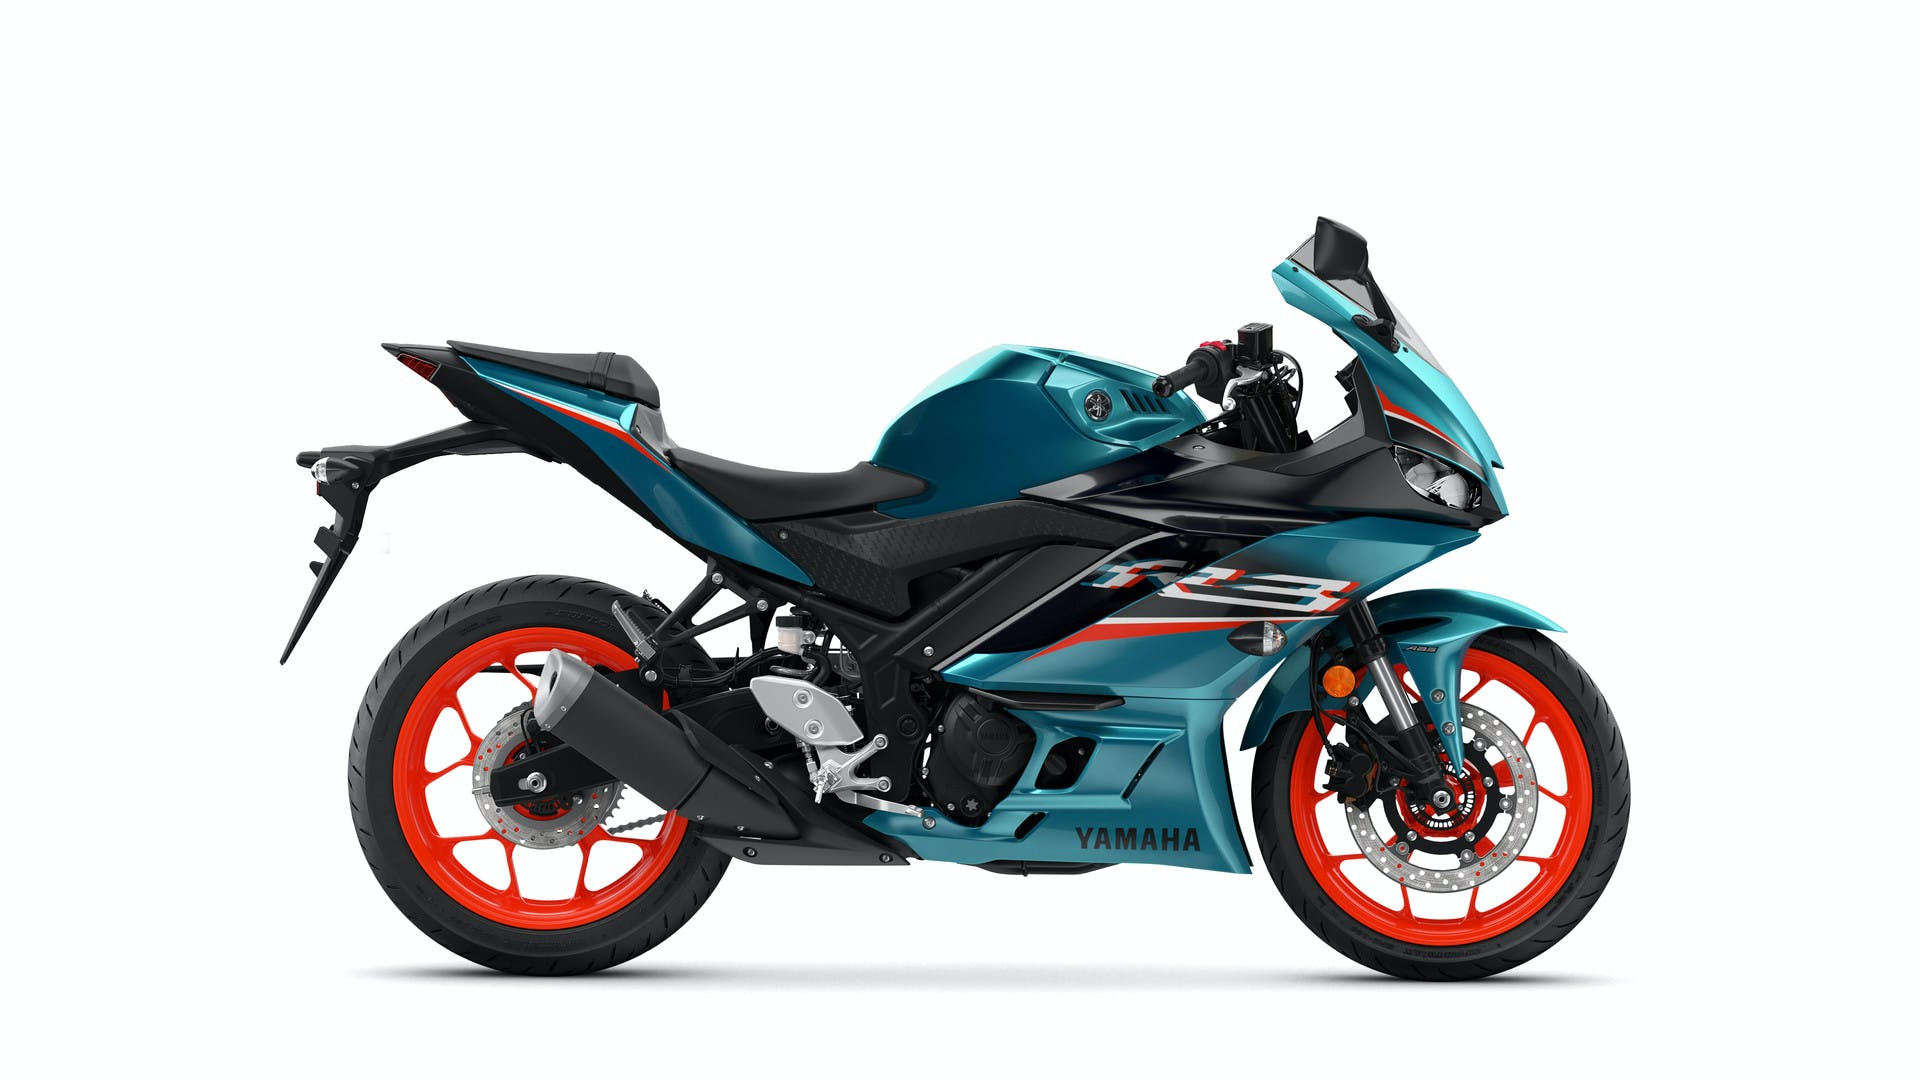 Yamaha YZF-R3 in electric teal colour